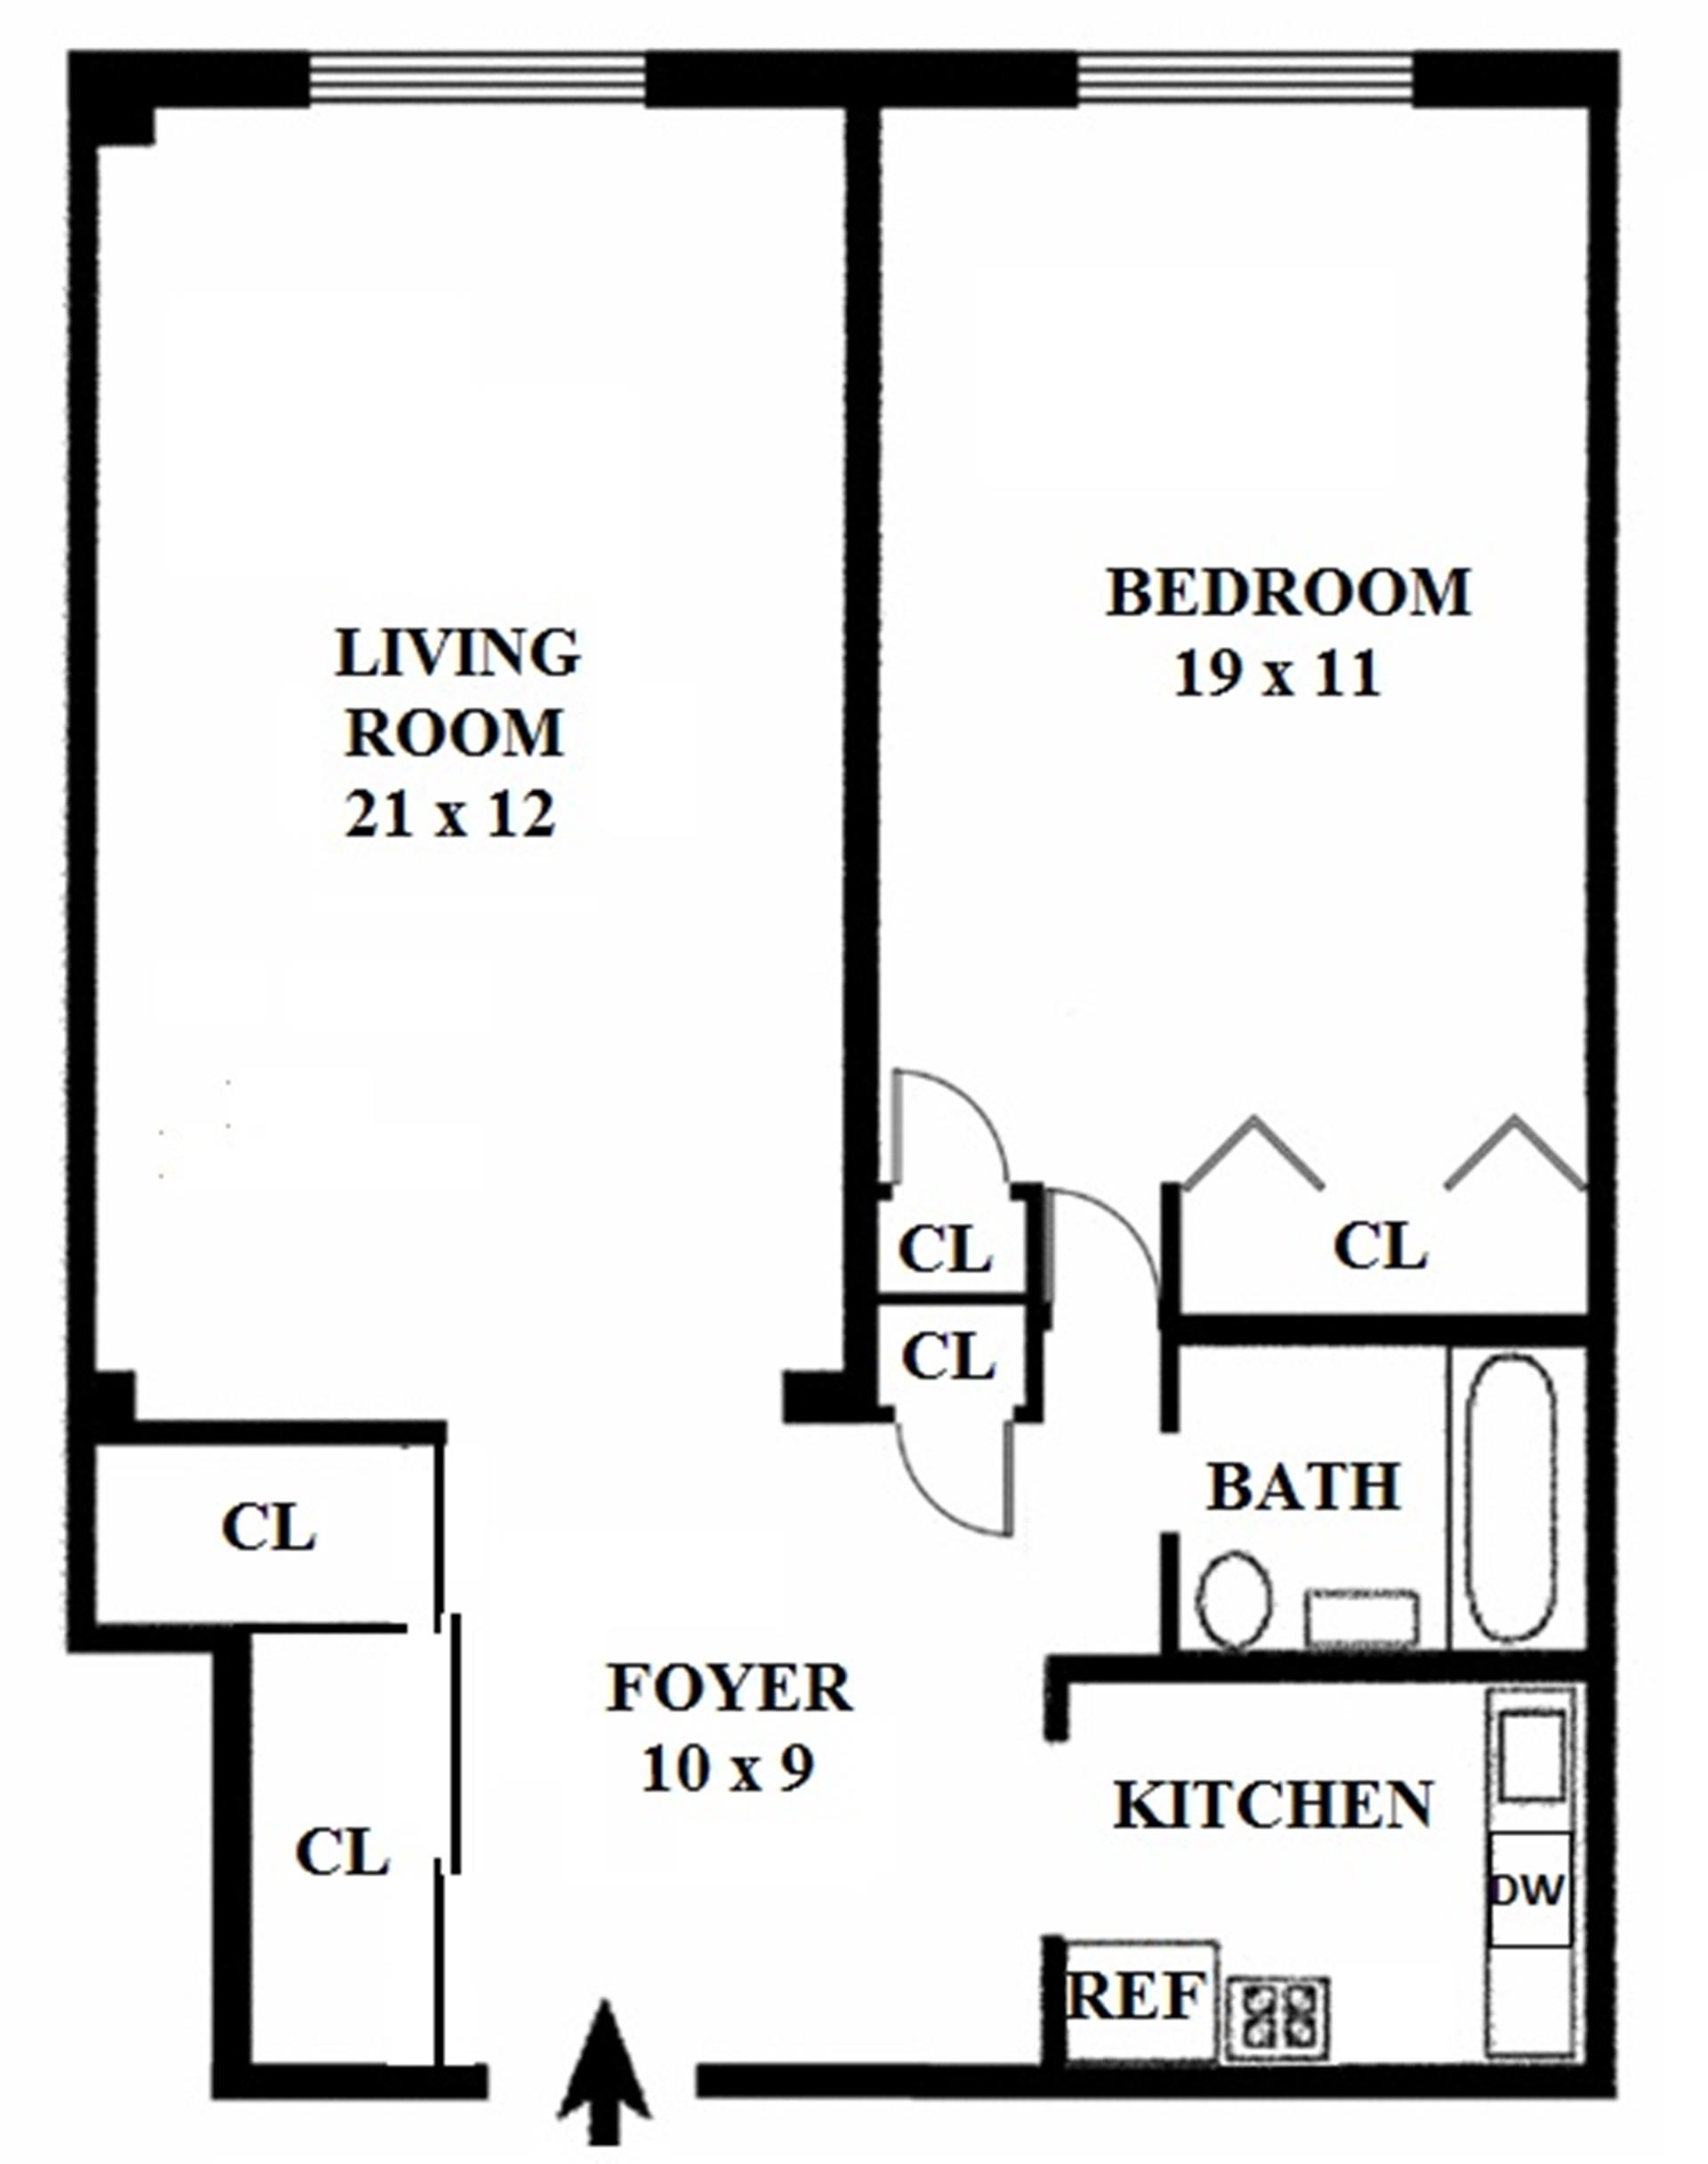 Floor plan of NORVILLE HOUSE, 13 West 13th St, 6AS - Greenwich Village, New York